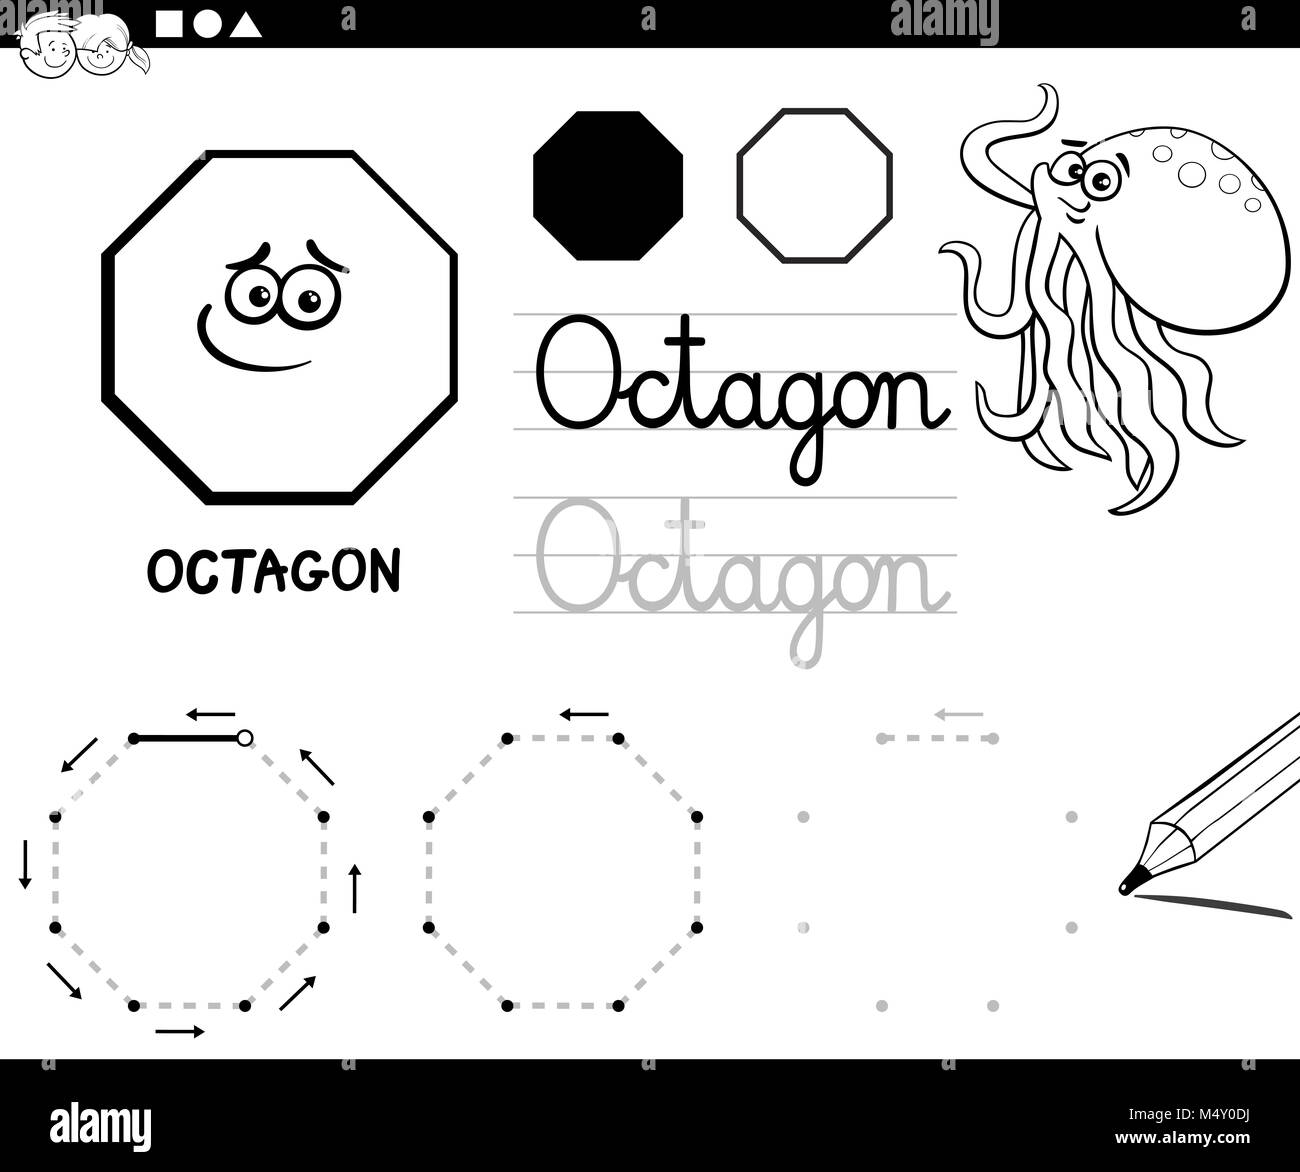 octagon basic geometric shapes coloring page Stock Photo: 175155390 ...